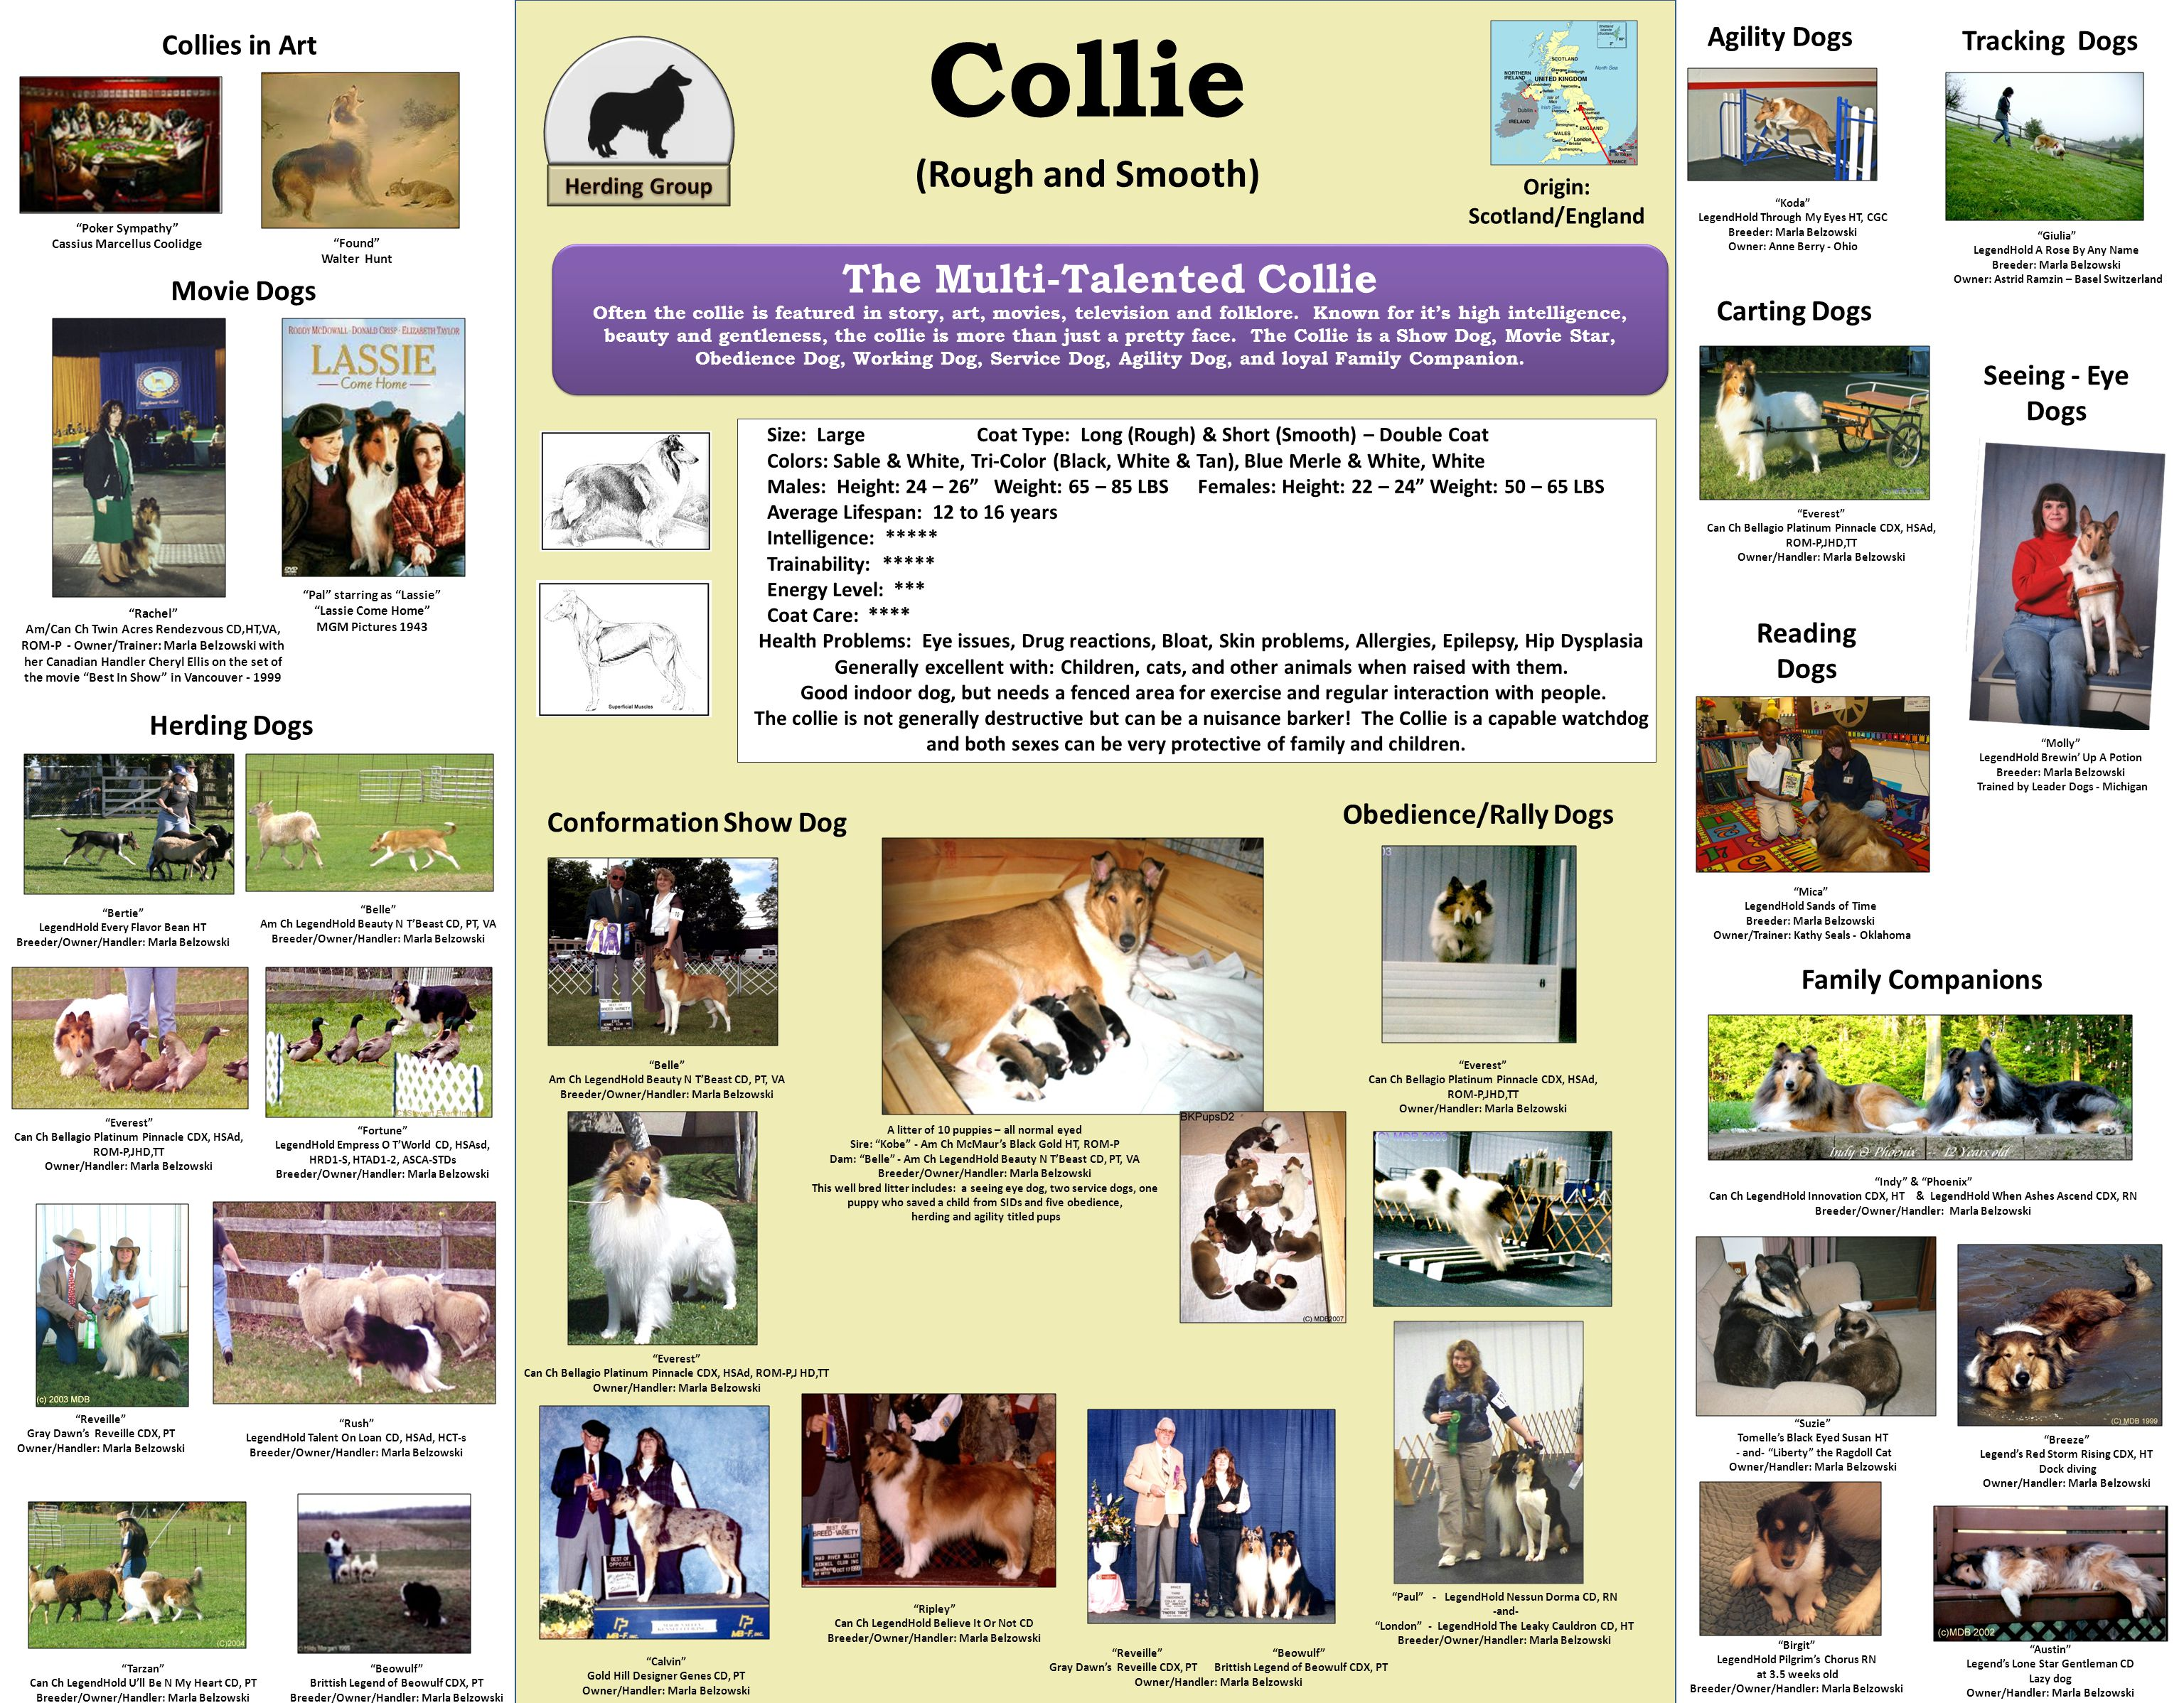 Collie (Rough and Smooth) Origin: Scotland/England Size: Large Coat Type: Long (Rough) & Short (Smooth) – Double Coat Colors: Sable & White, Tri-Color